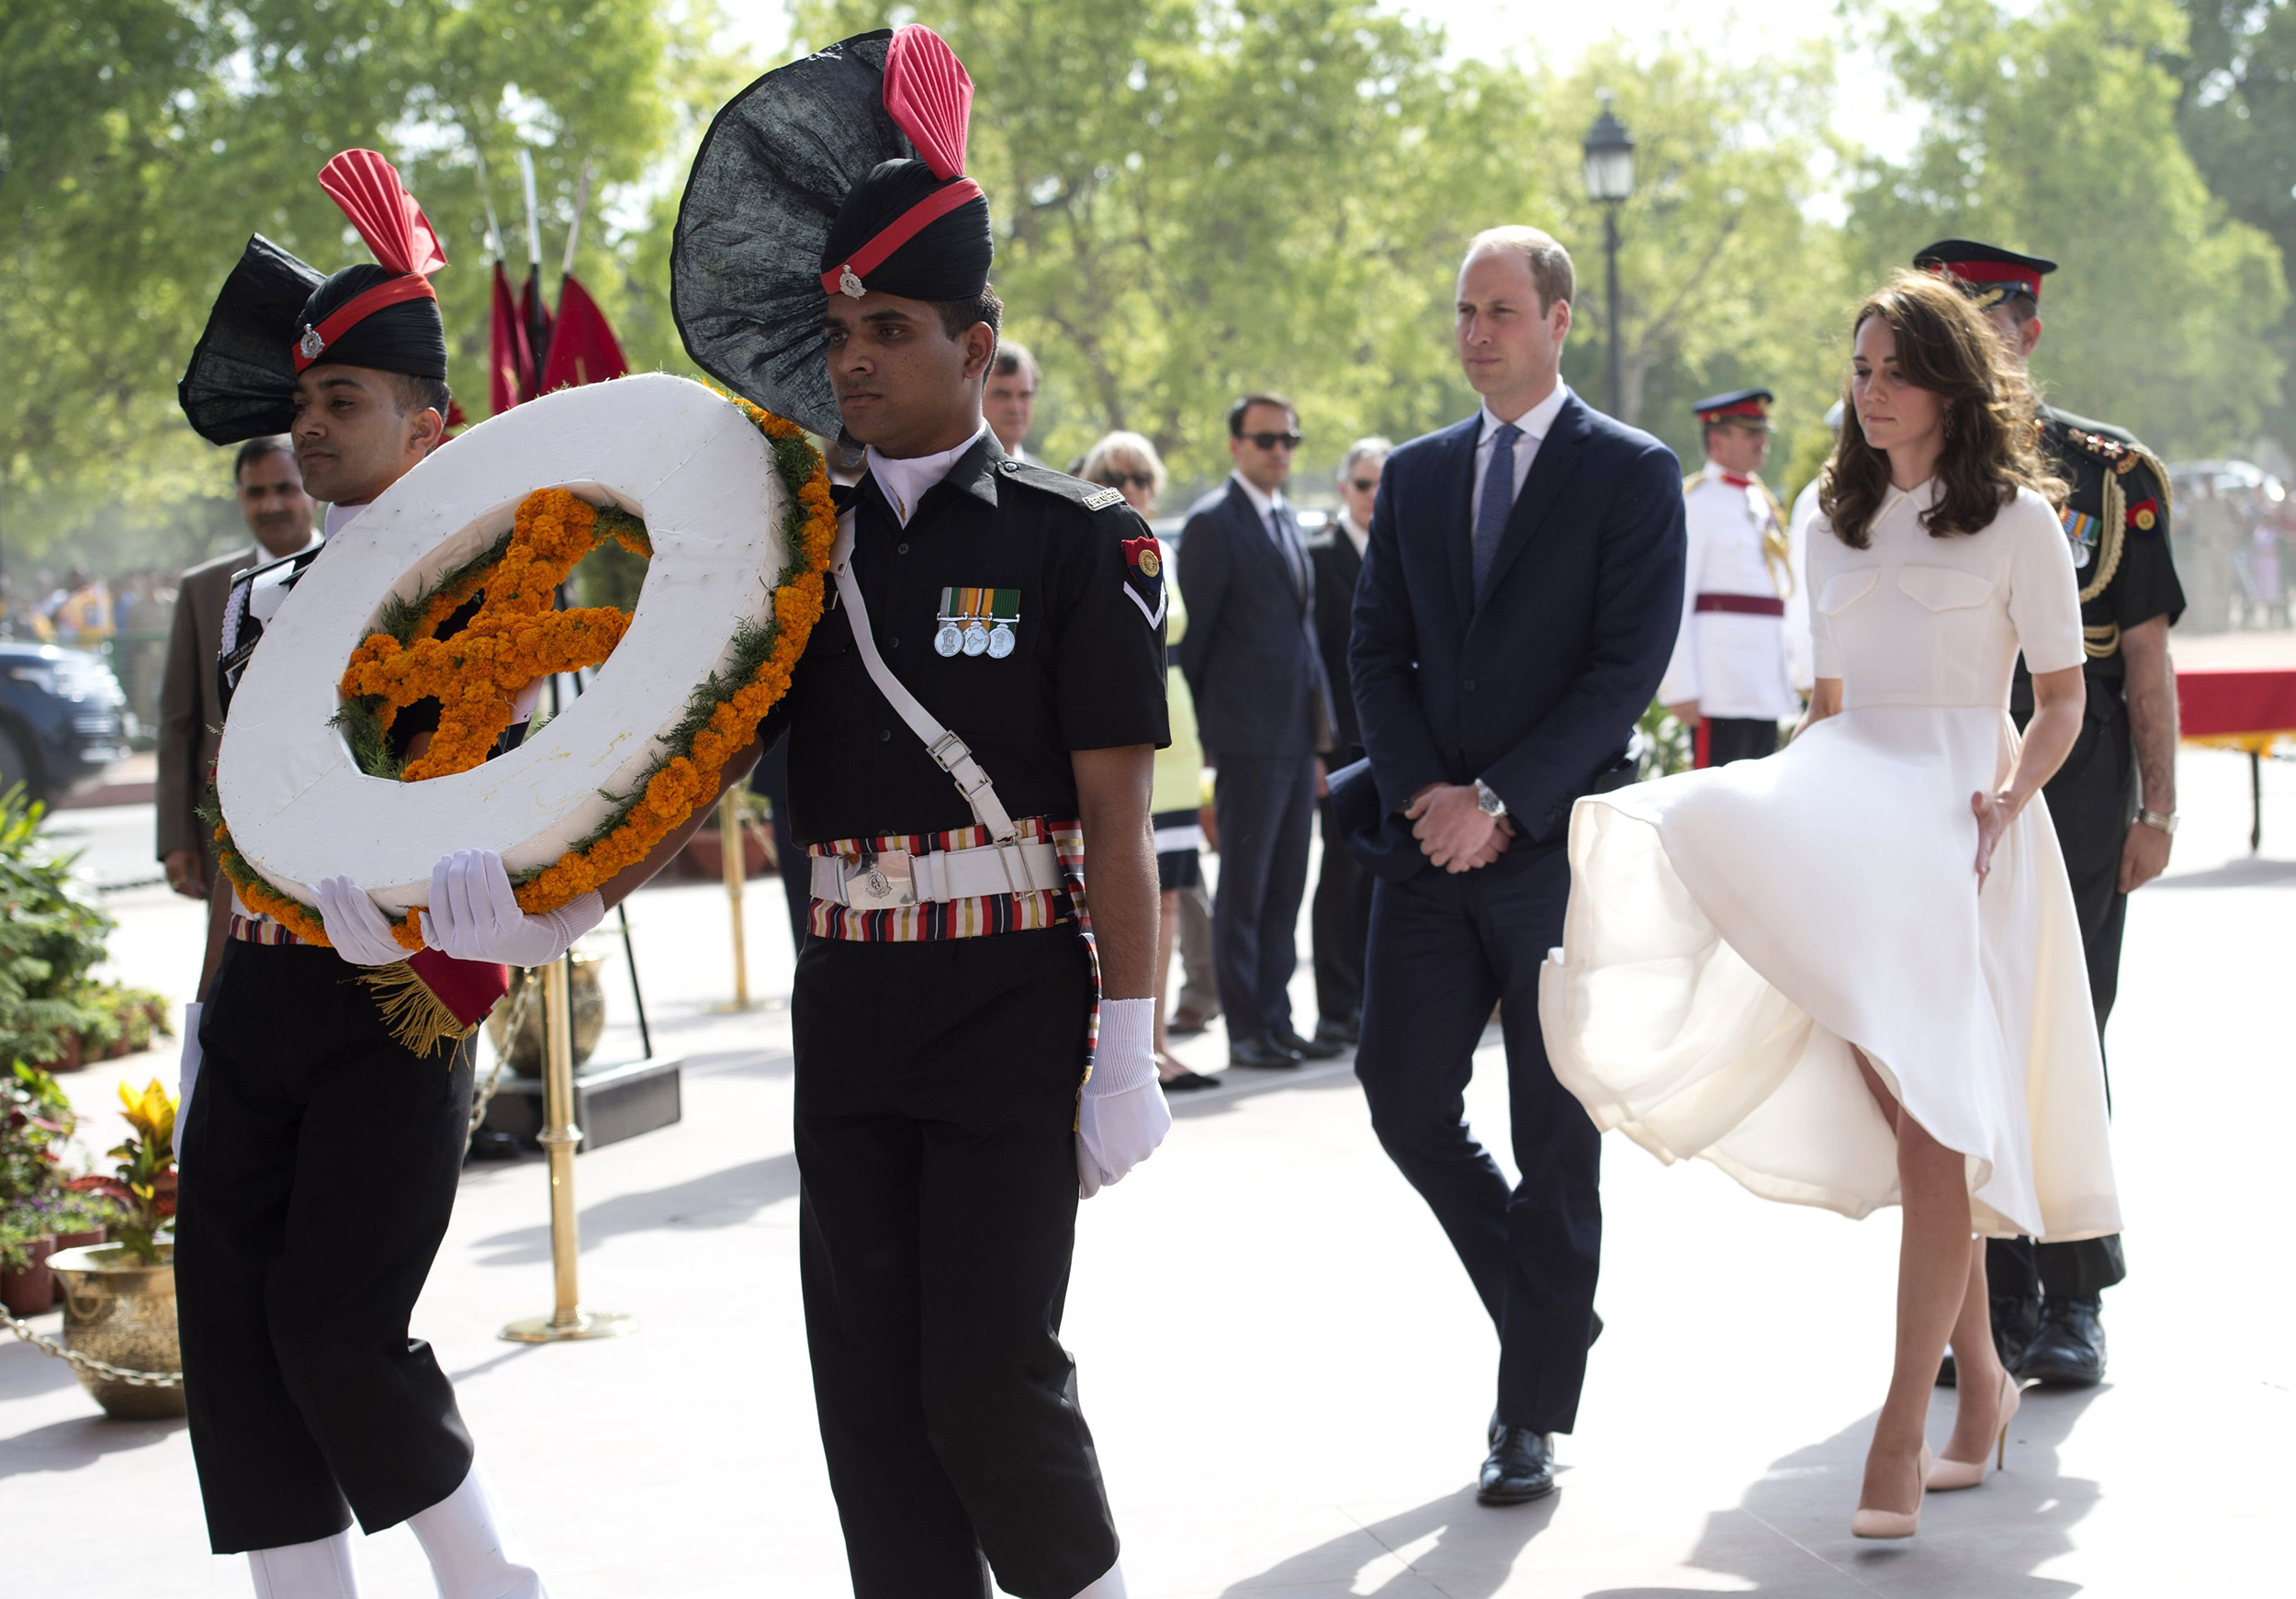 Prince William and Catherine, Duchess of Cambridge at a wreath-laying at India Gate, New Delhi on April 11, 2016.